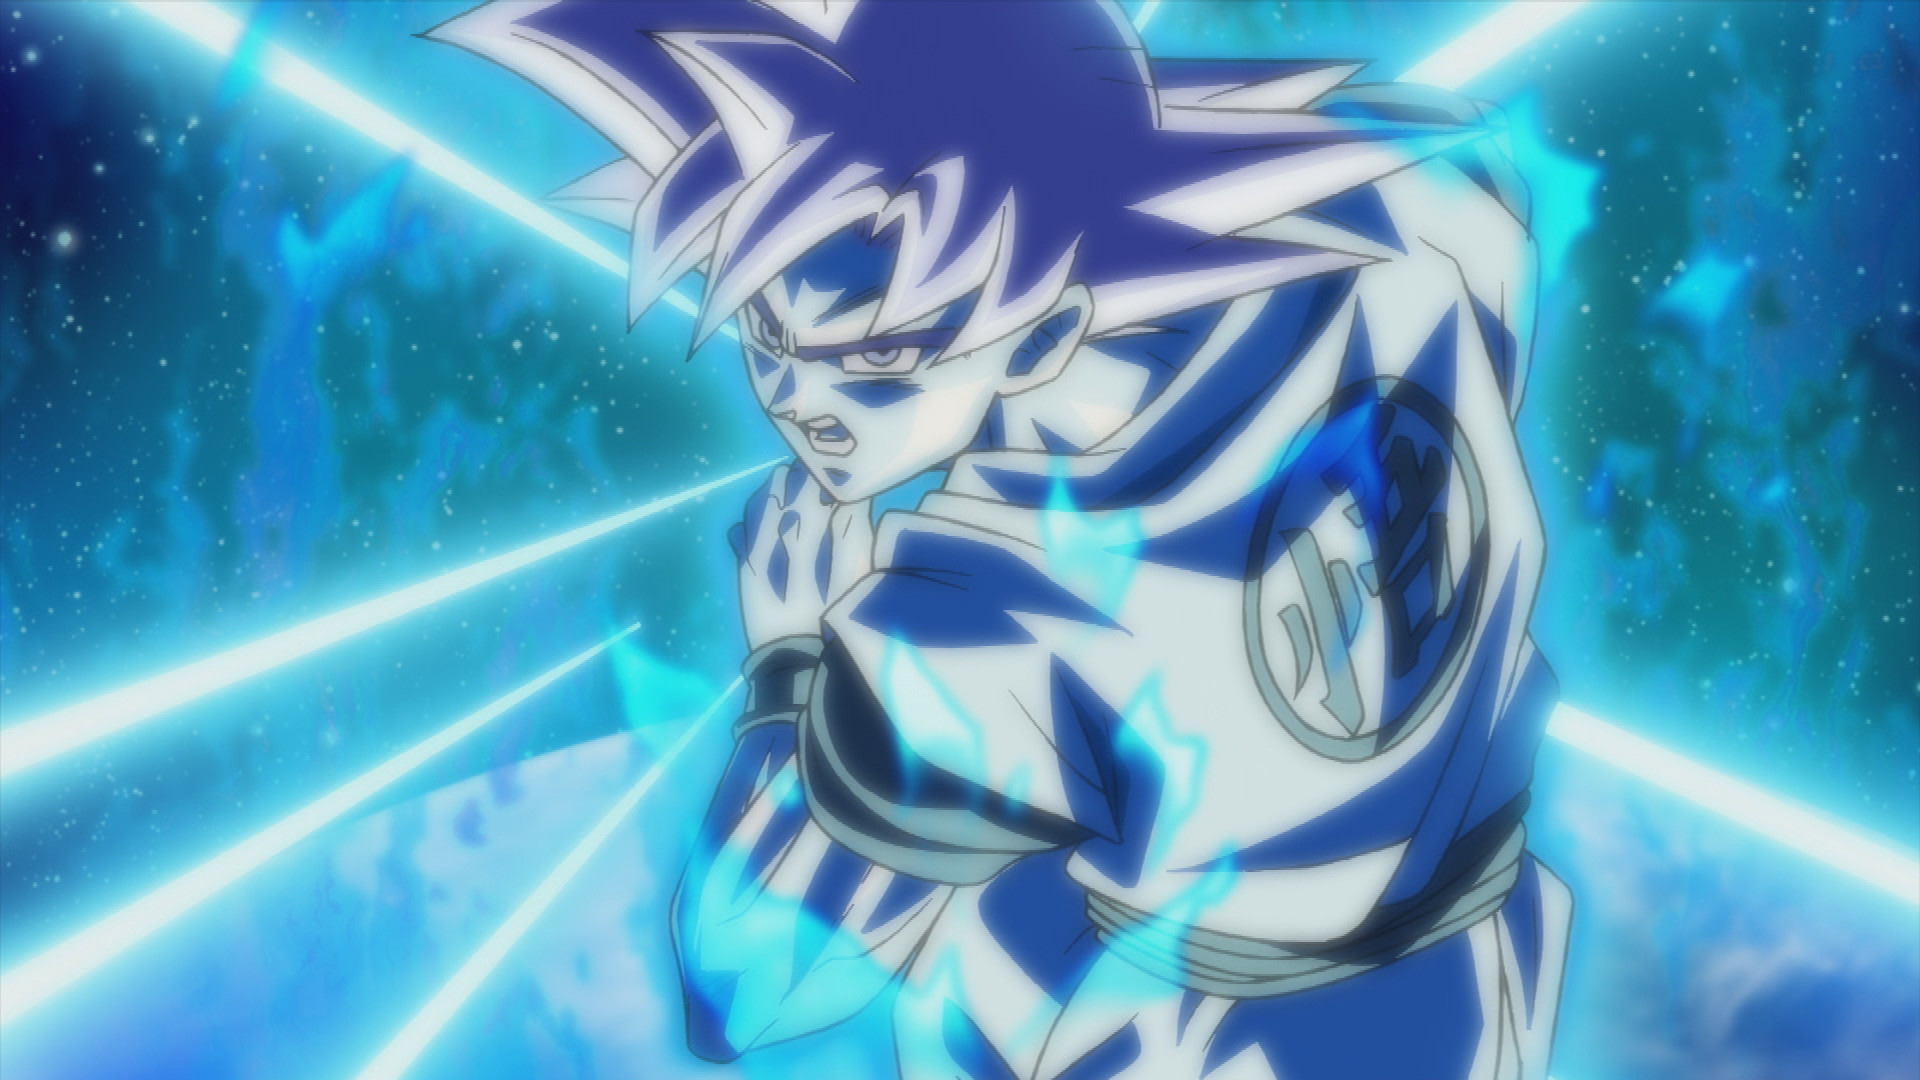 Dragon Ball Z Kamehameha Wallpaper Picture with HD Wallpaper Resolution  px 892.35 KB Anime Iphone